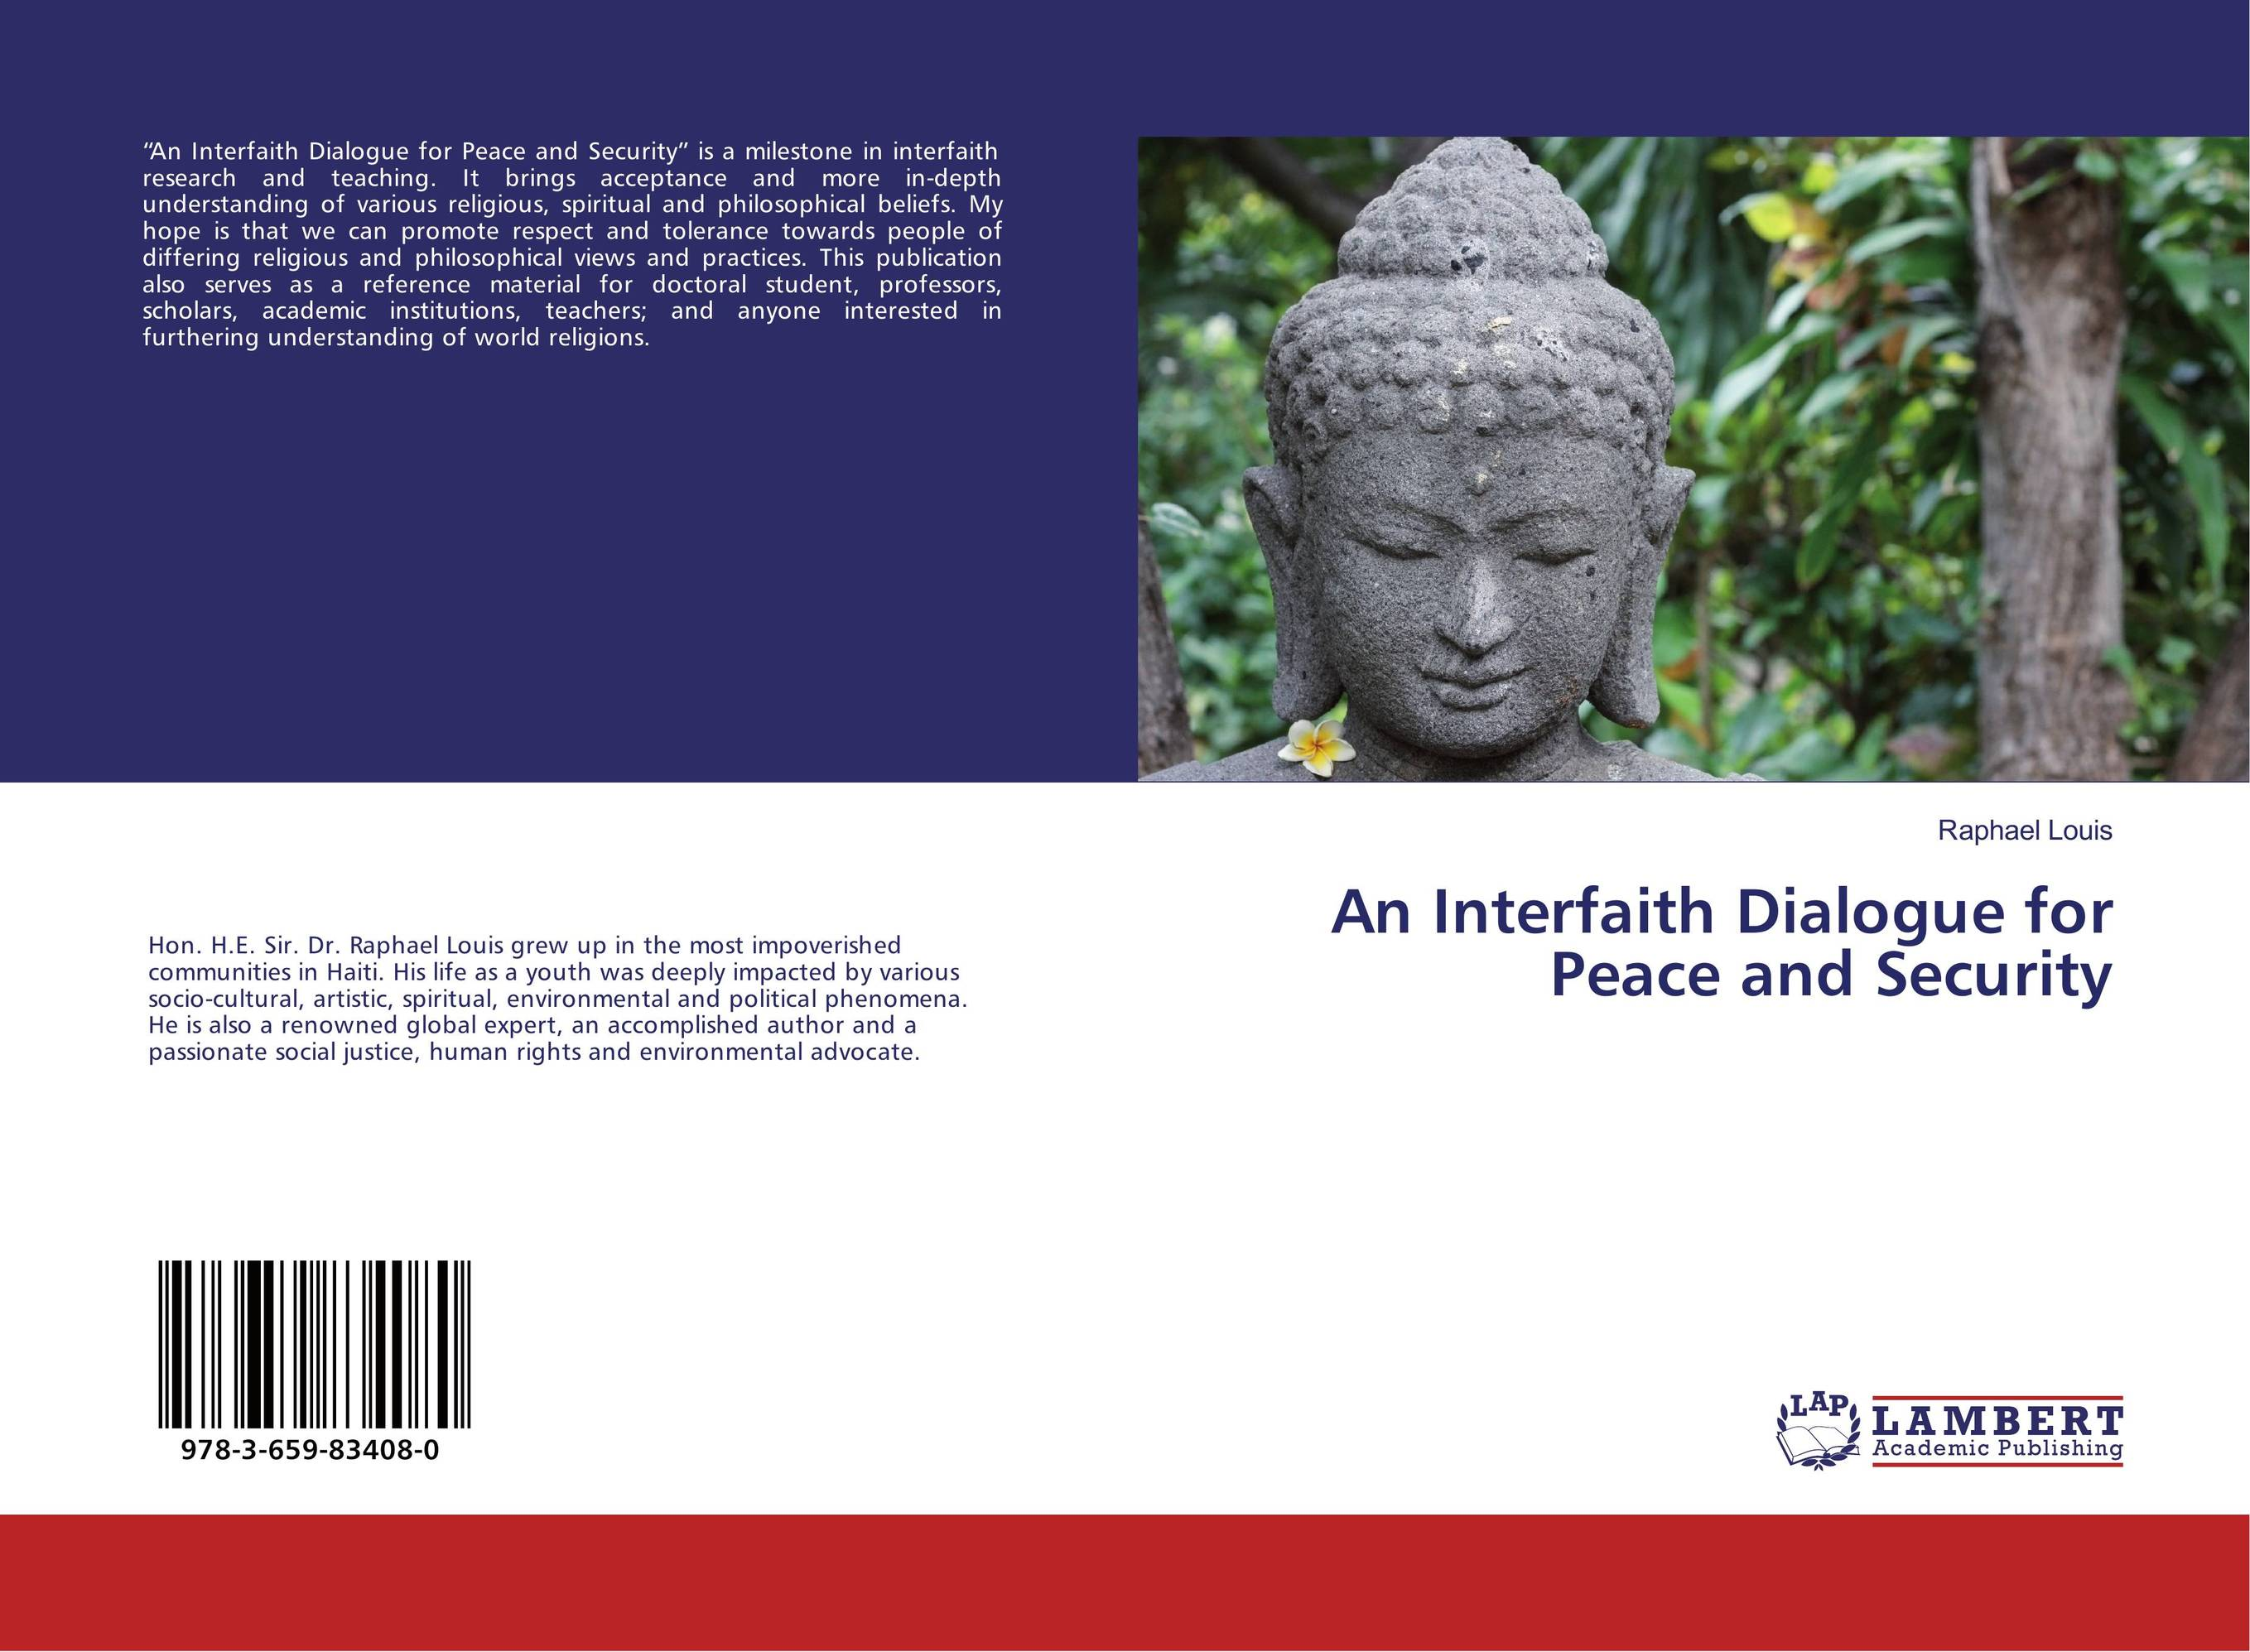 An Interfaith Dialogue for Peace and Security religious institutions and character building